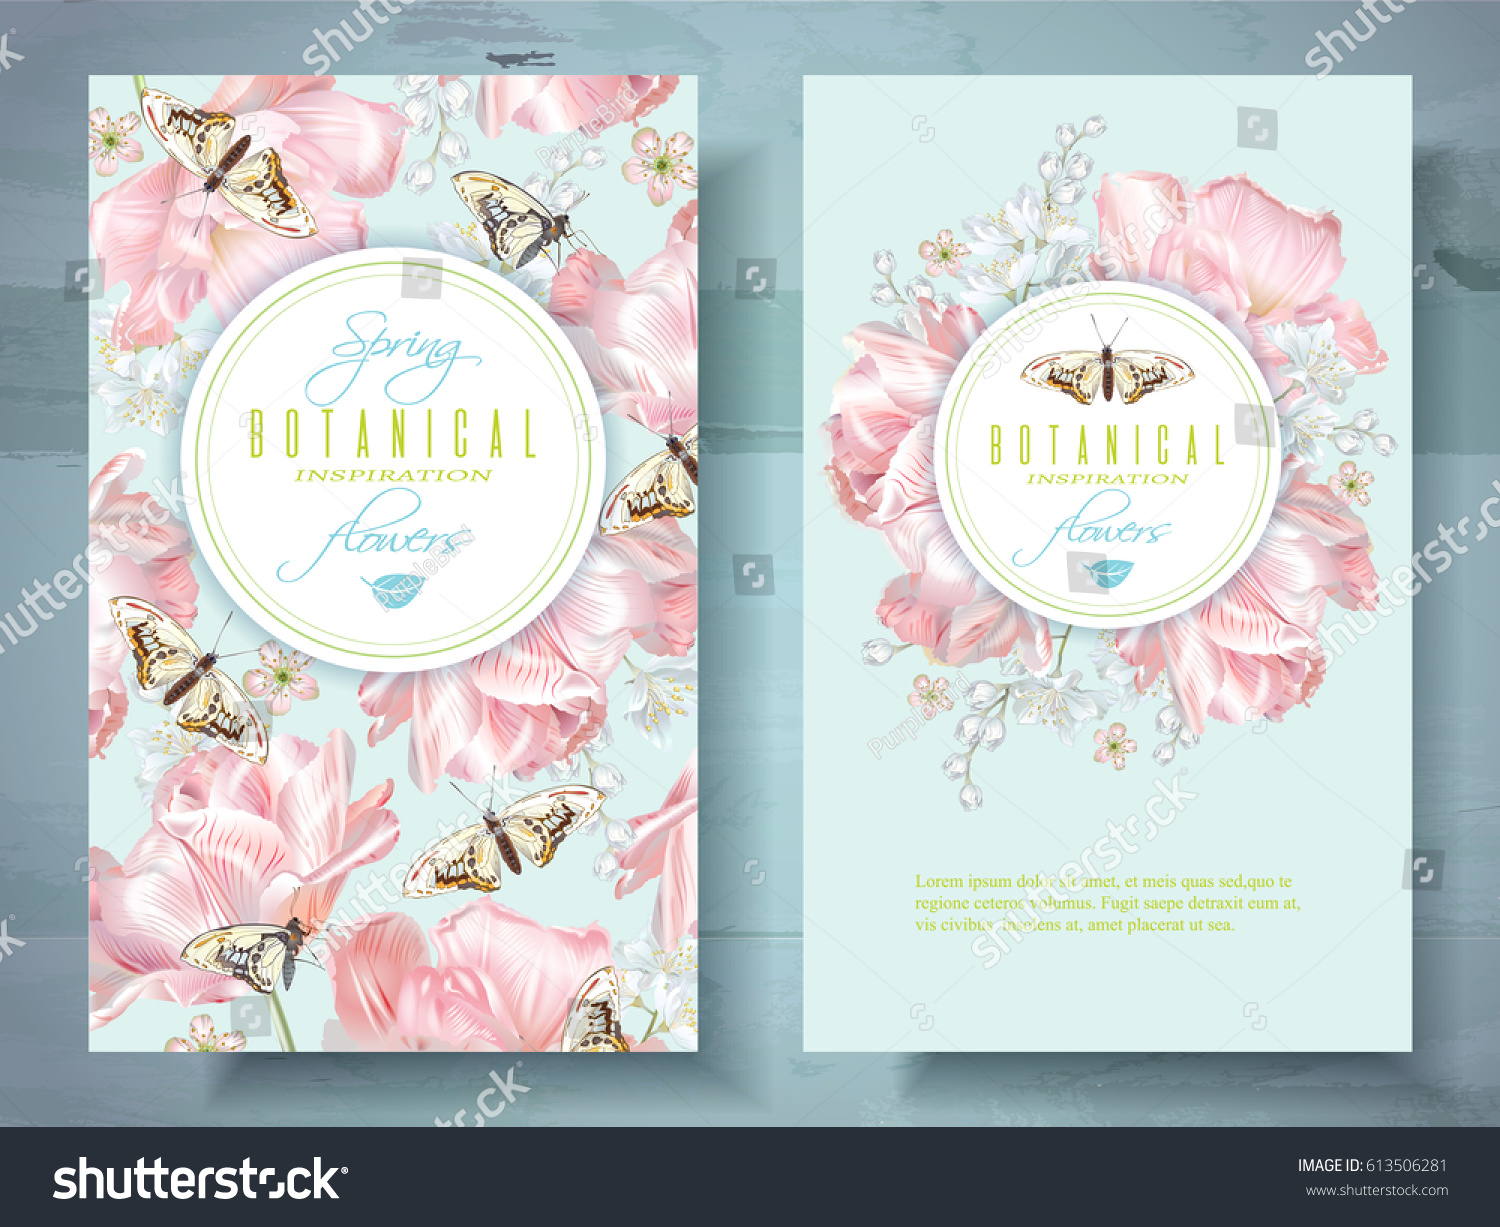 Vector spring flower banners pink tulips stock vector royalty free vector spring flower banners with pink tulips and butterflies elegant tender design for natural cosmetics mightylinksfo